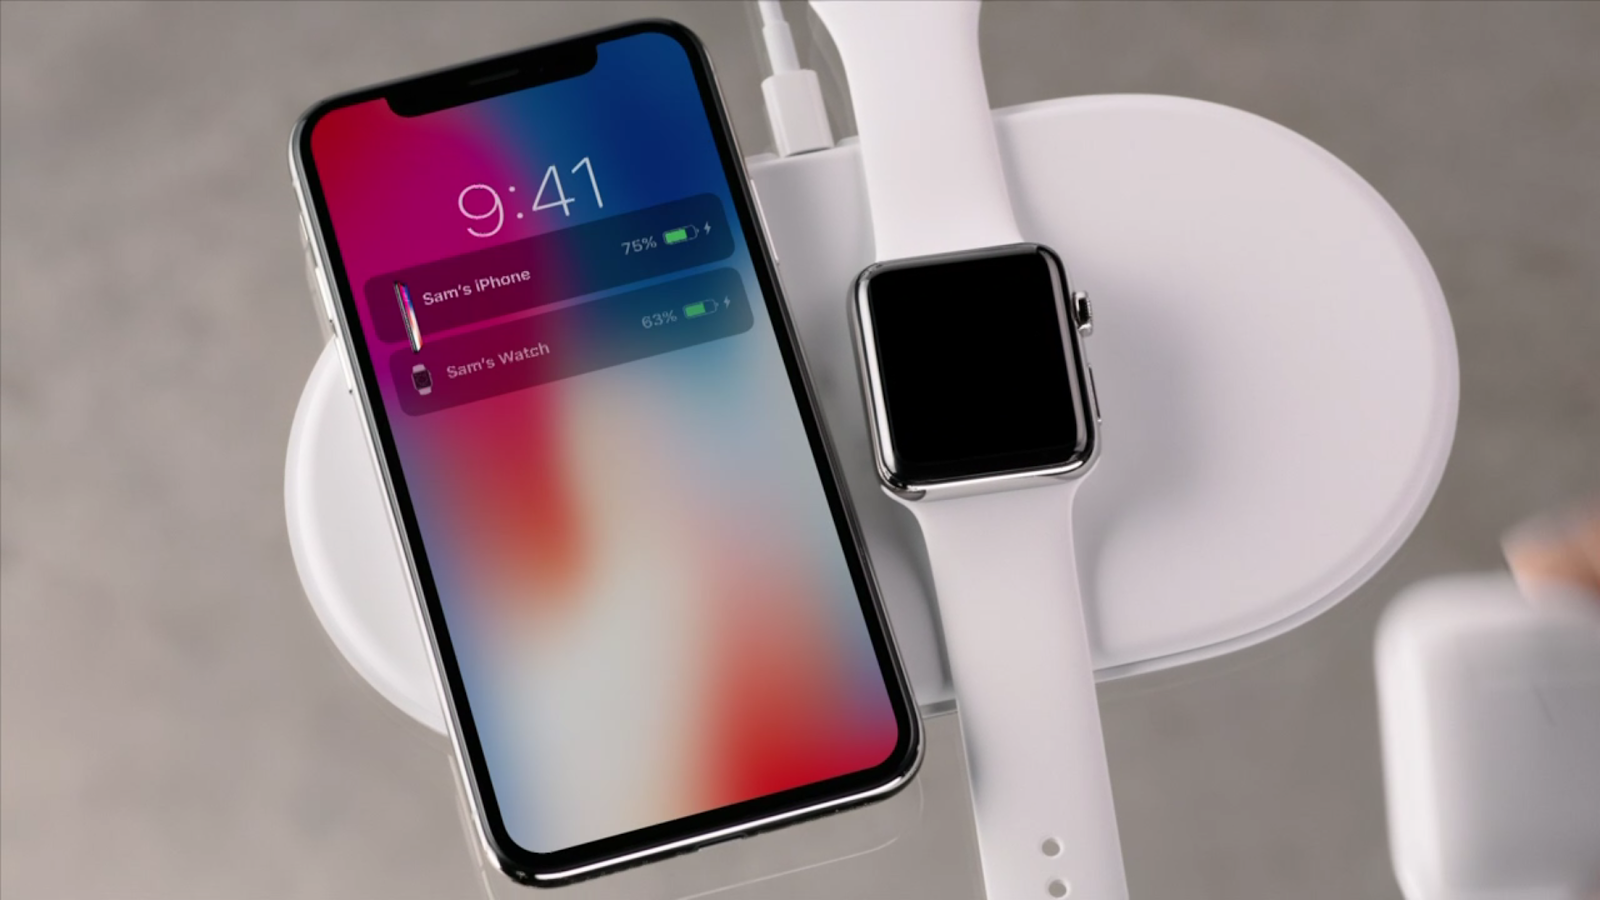 Check out the Stunning iPhone X (iPhone 10) images/pictures.